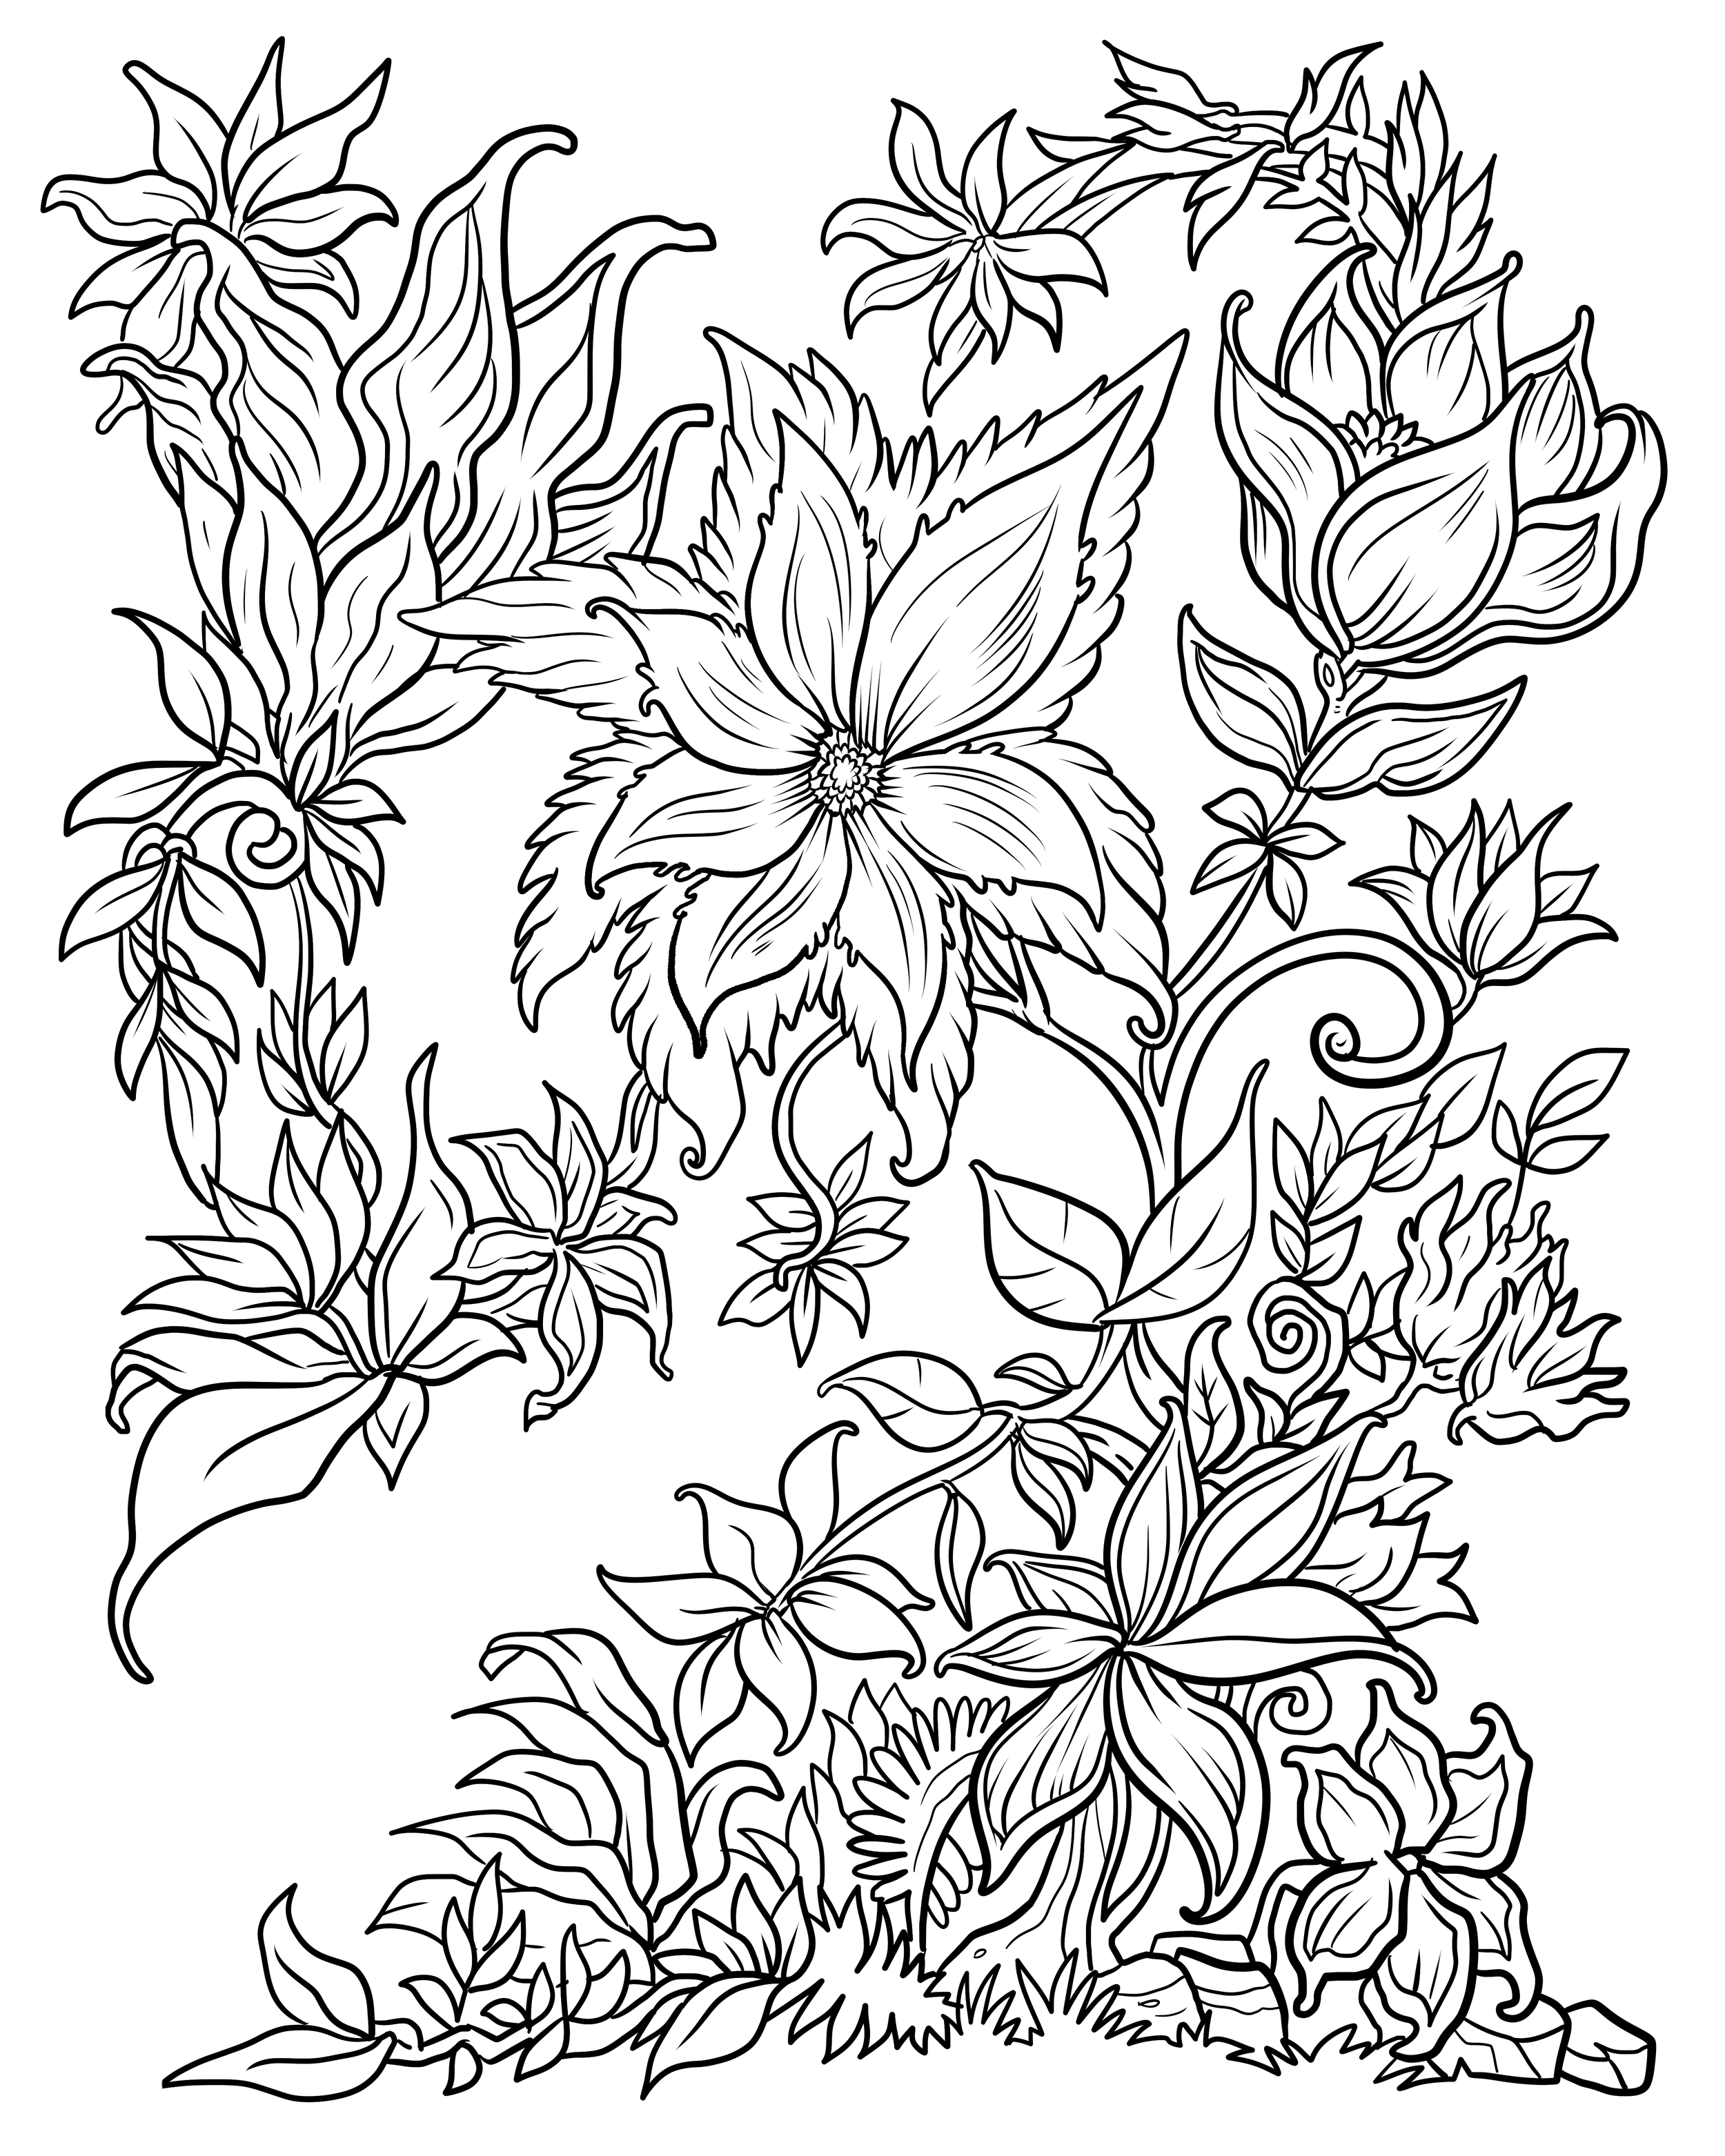 colouring pages for adults print free printable adult coloring page rosettes familyeducation pages print for colouring adults